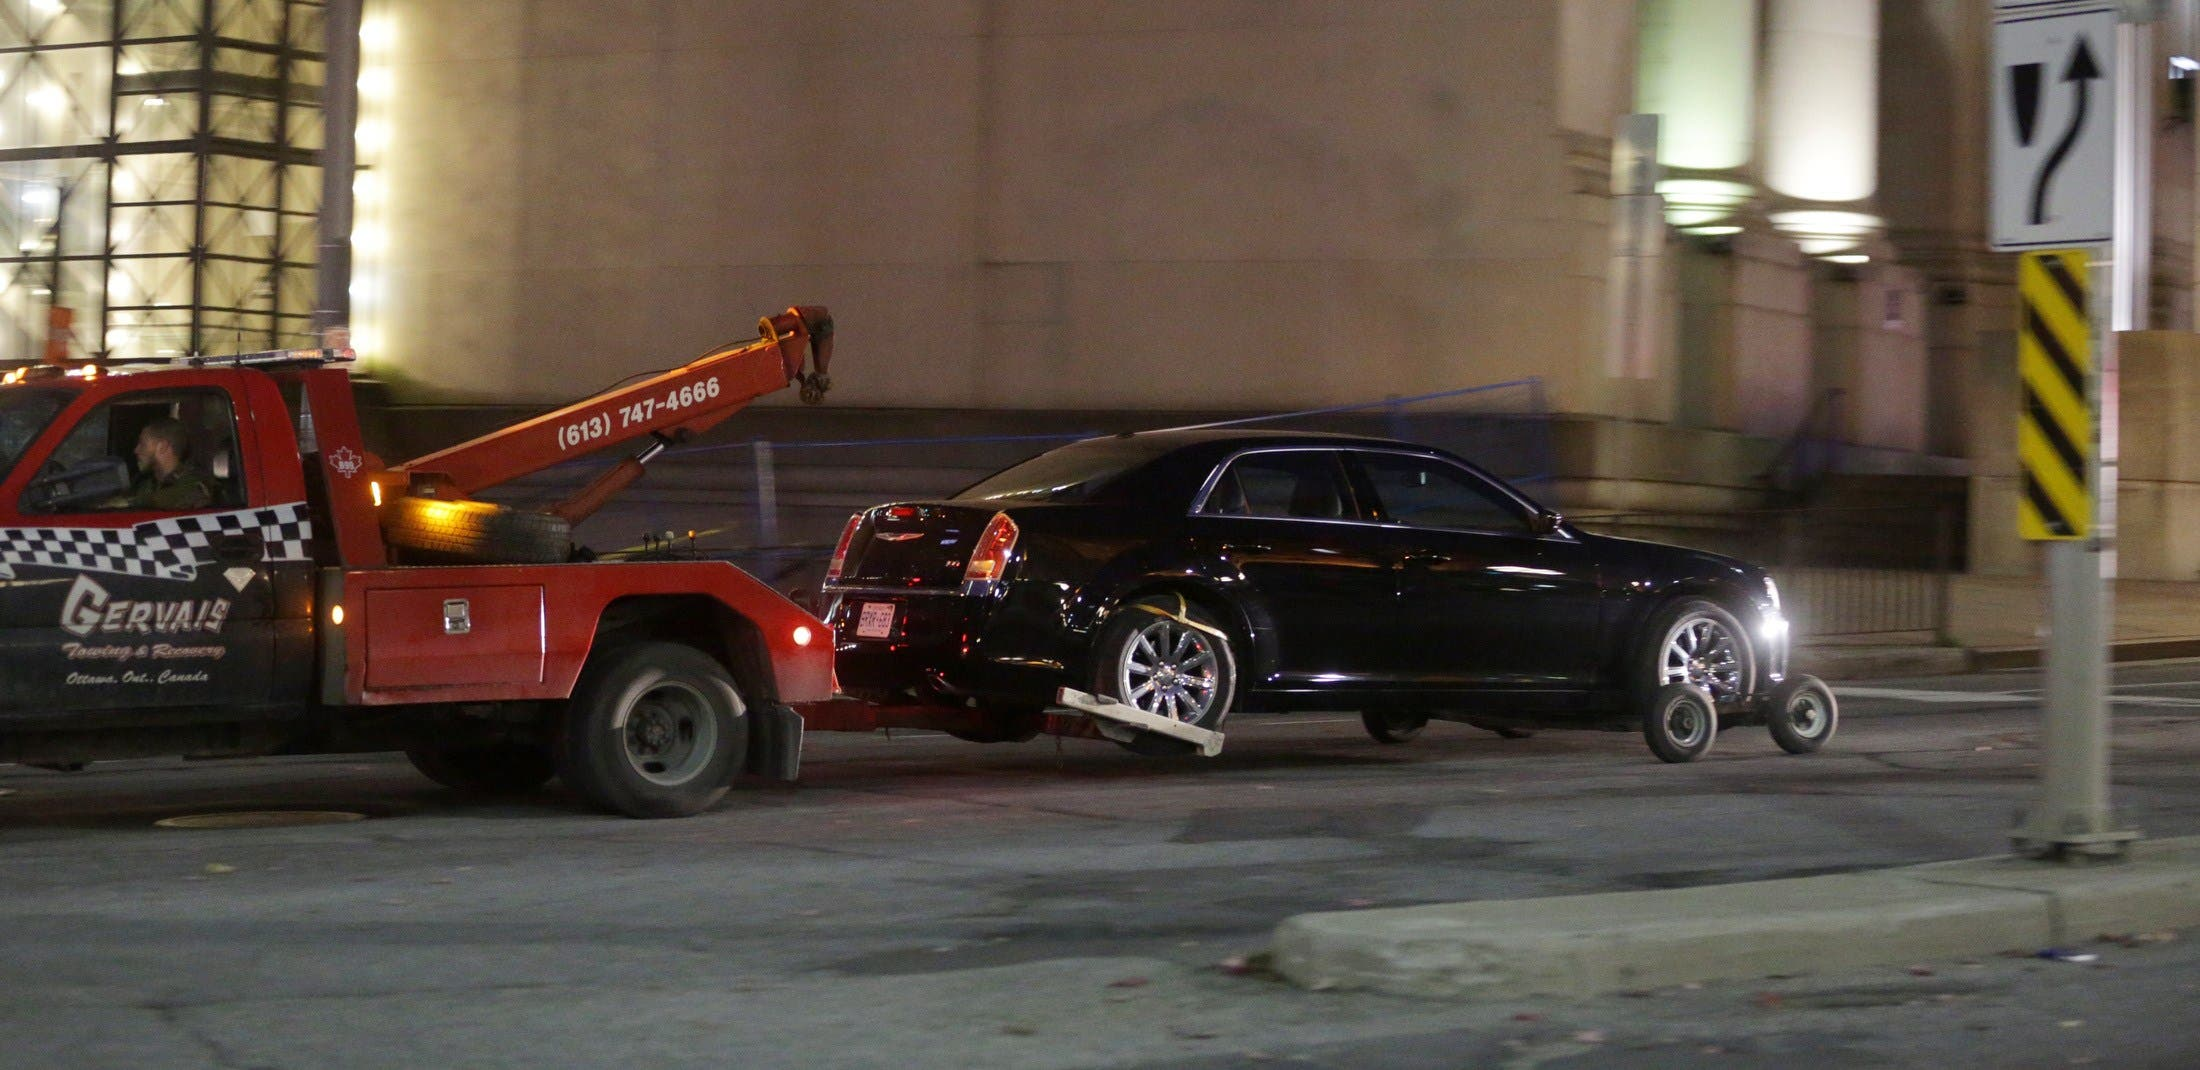 A Chrysler vehicle is towed away from Parliament Hill on October 22, 2014 in Ottawa, Canada.